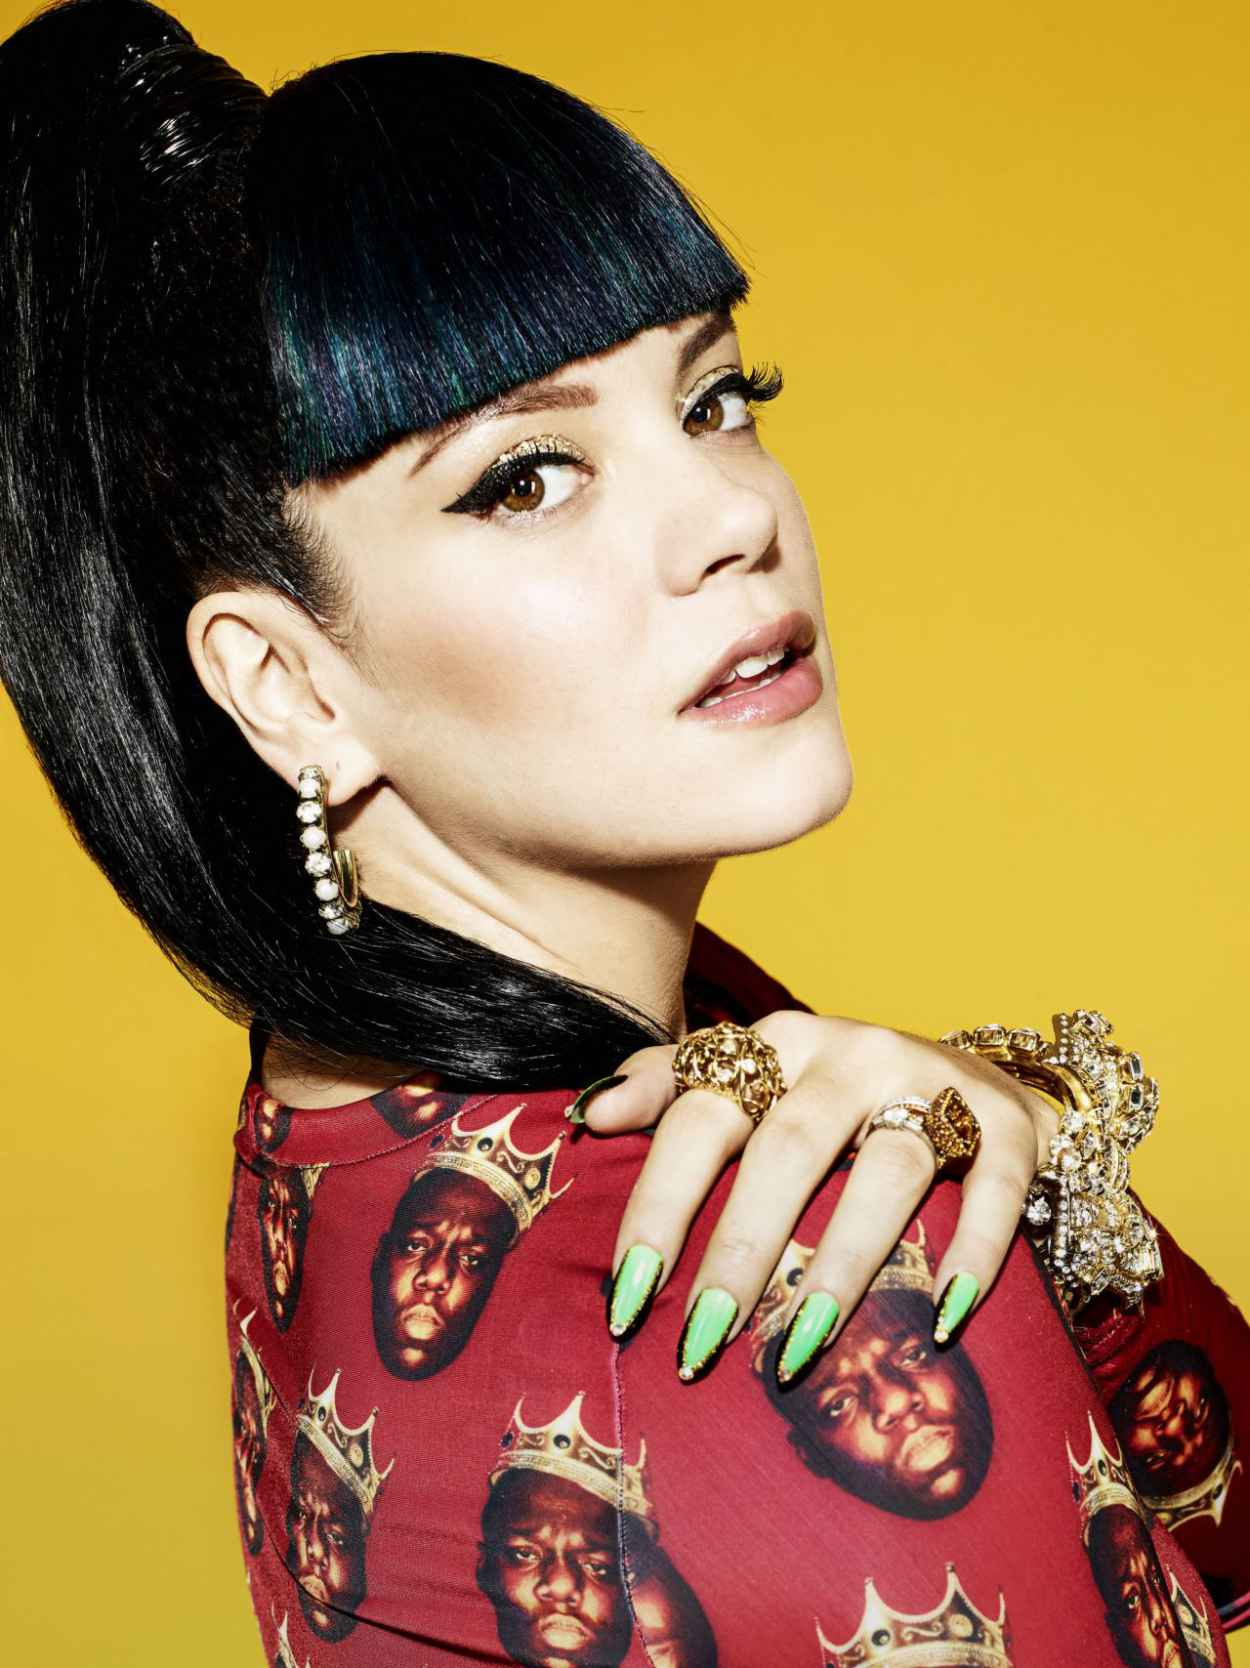 Lily Allen NME 2015 Photoshoot-1